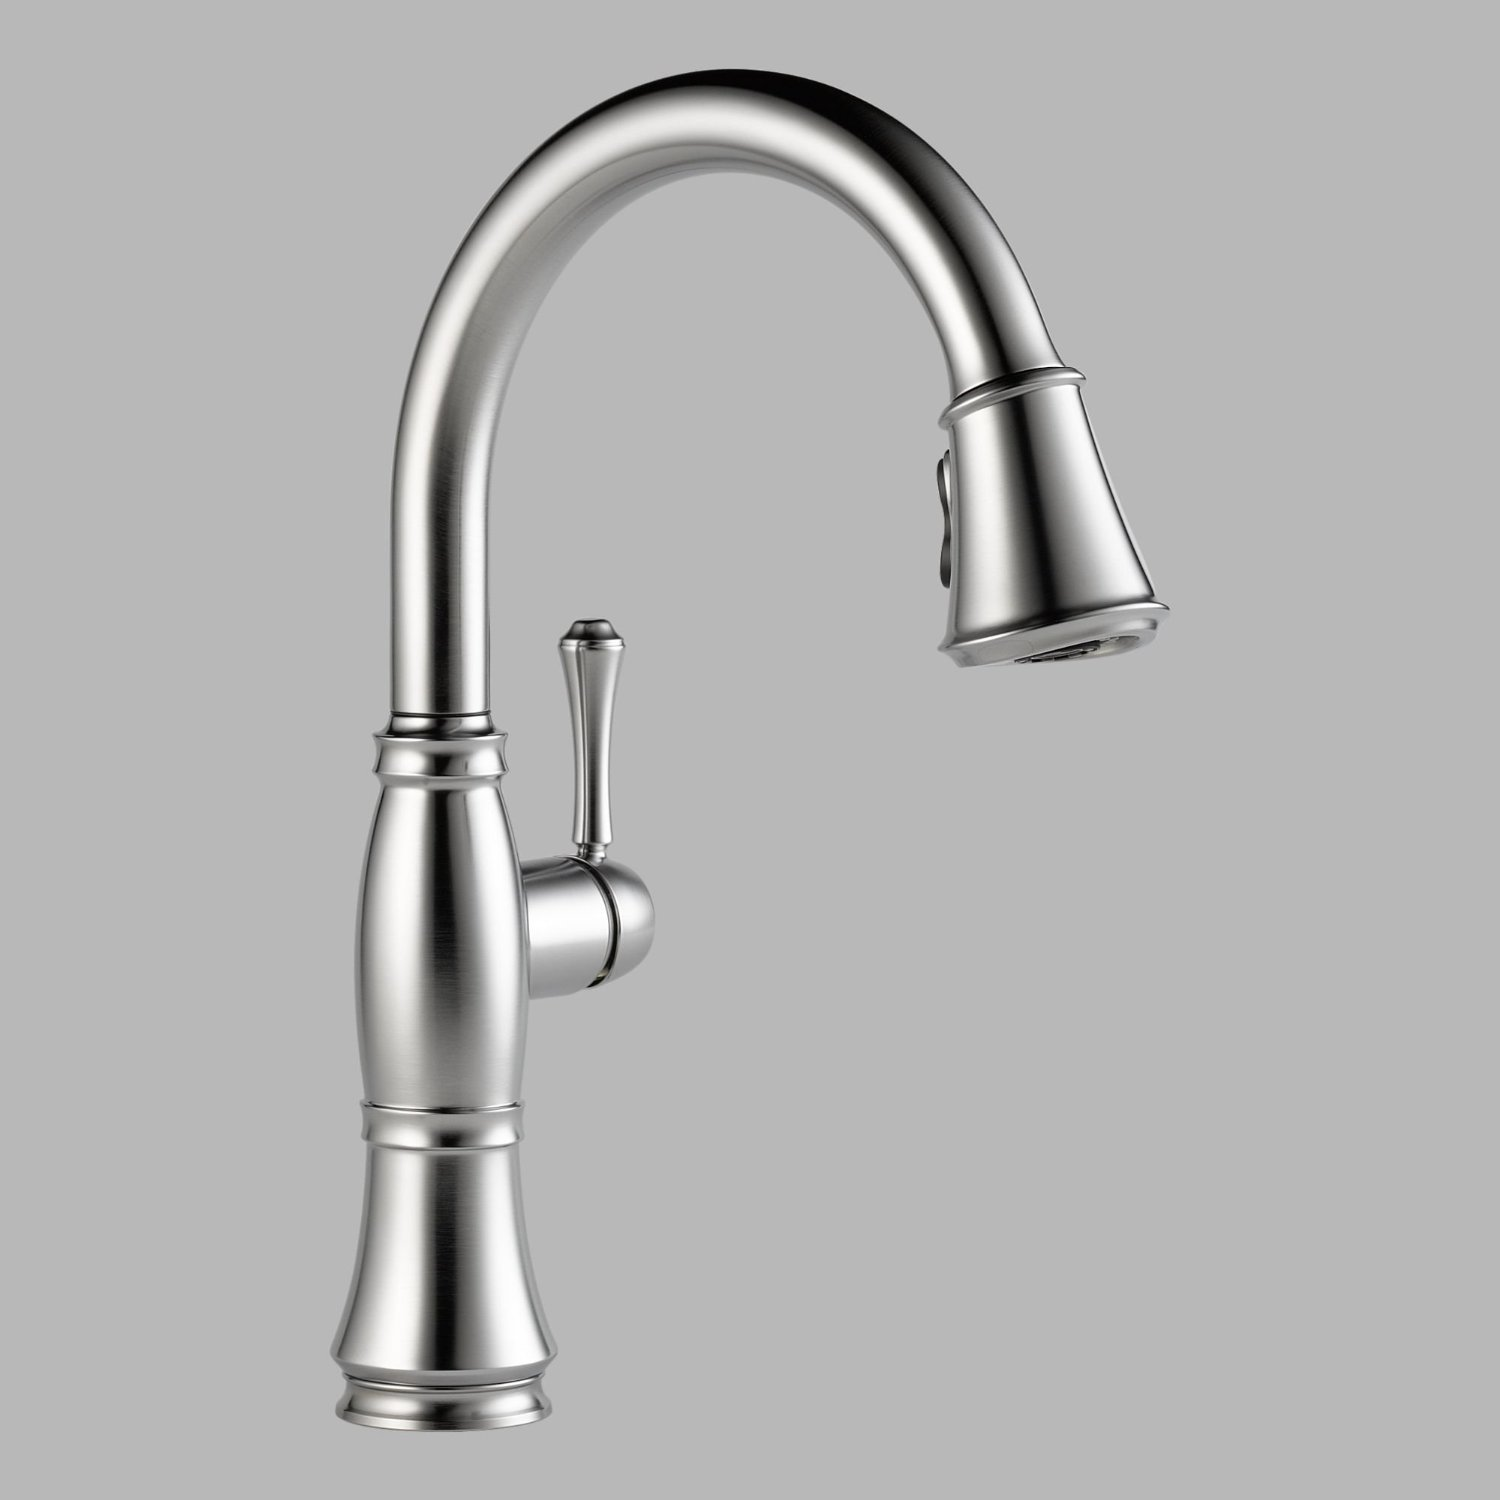 Best Delta Cassidy Kitchen Faucet For Kitchen Faucet Ideas With Delta  Single Handle Kitchen Faucet With